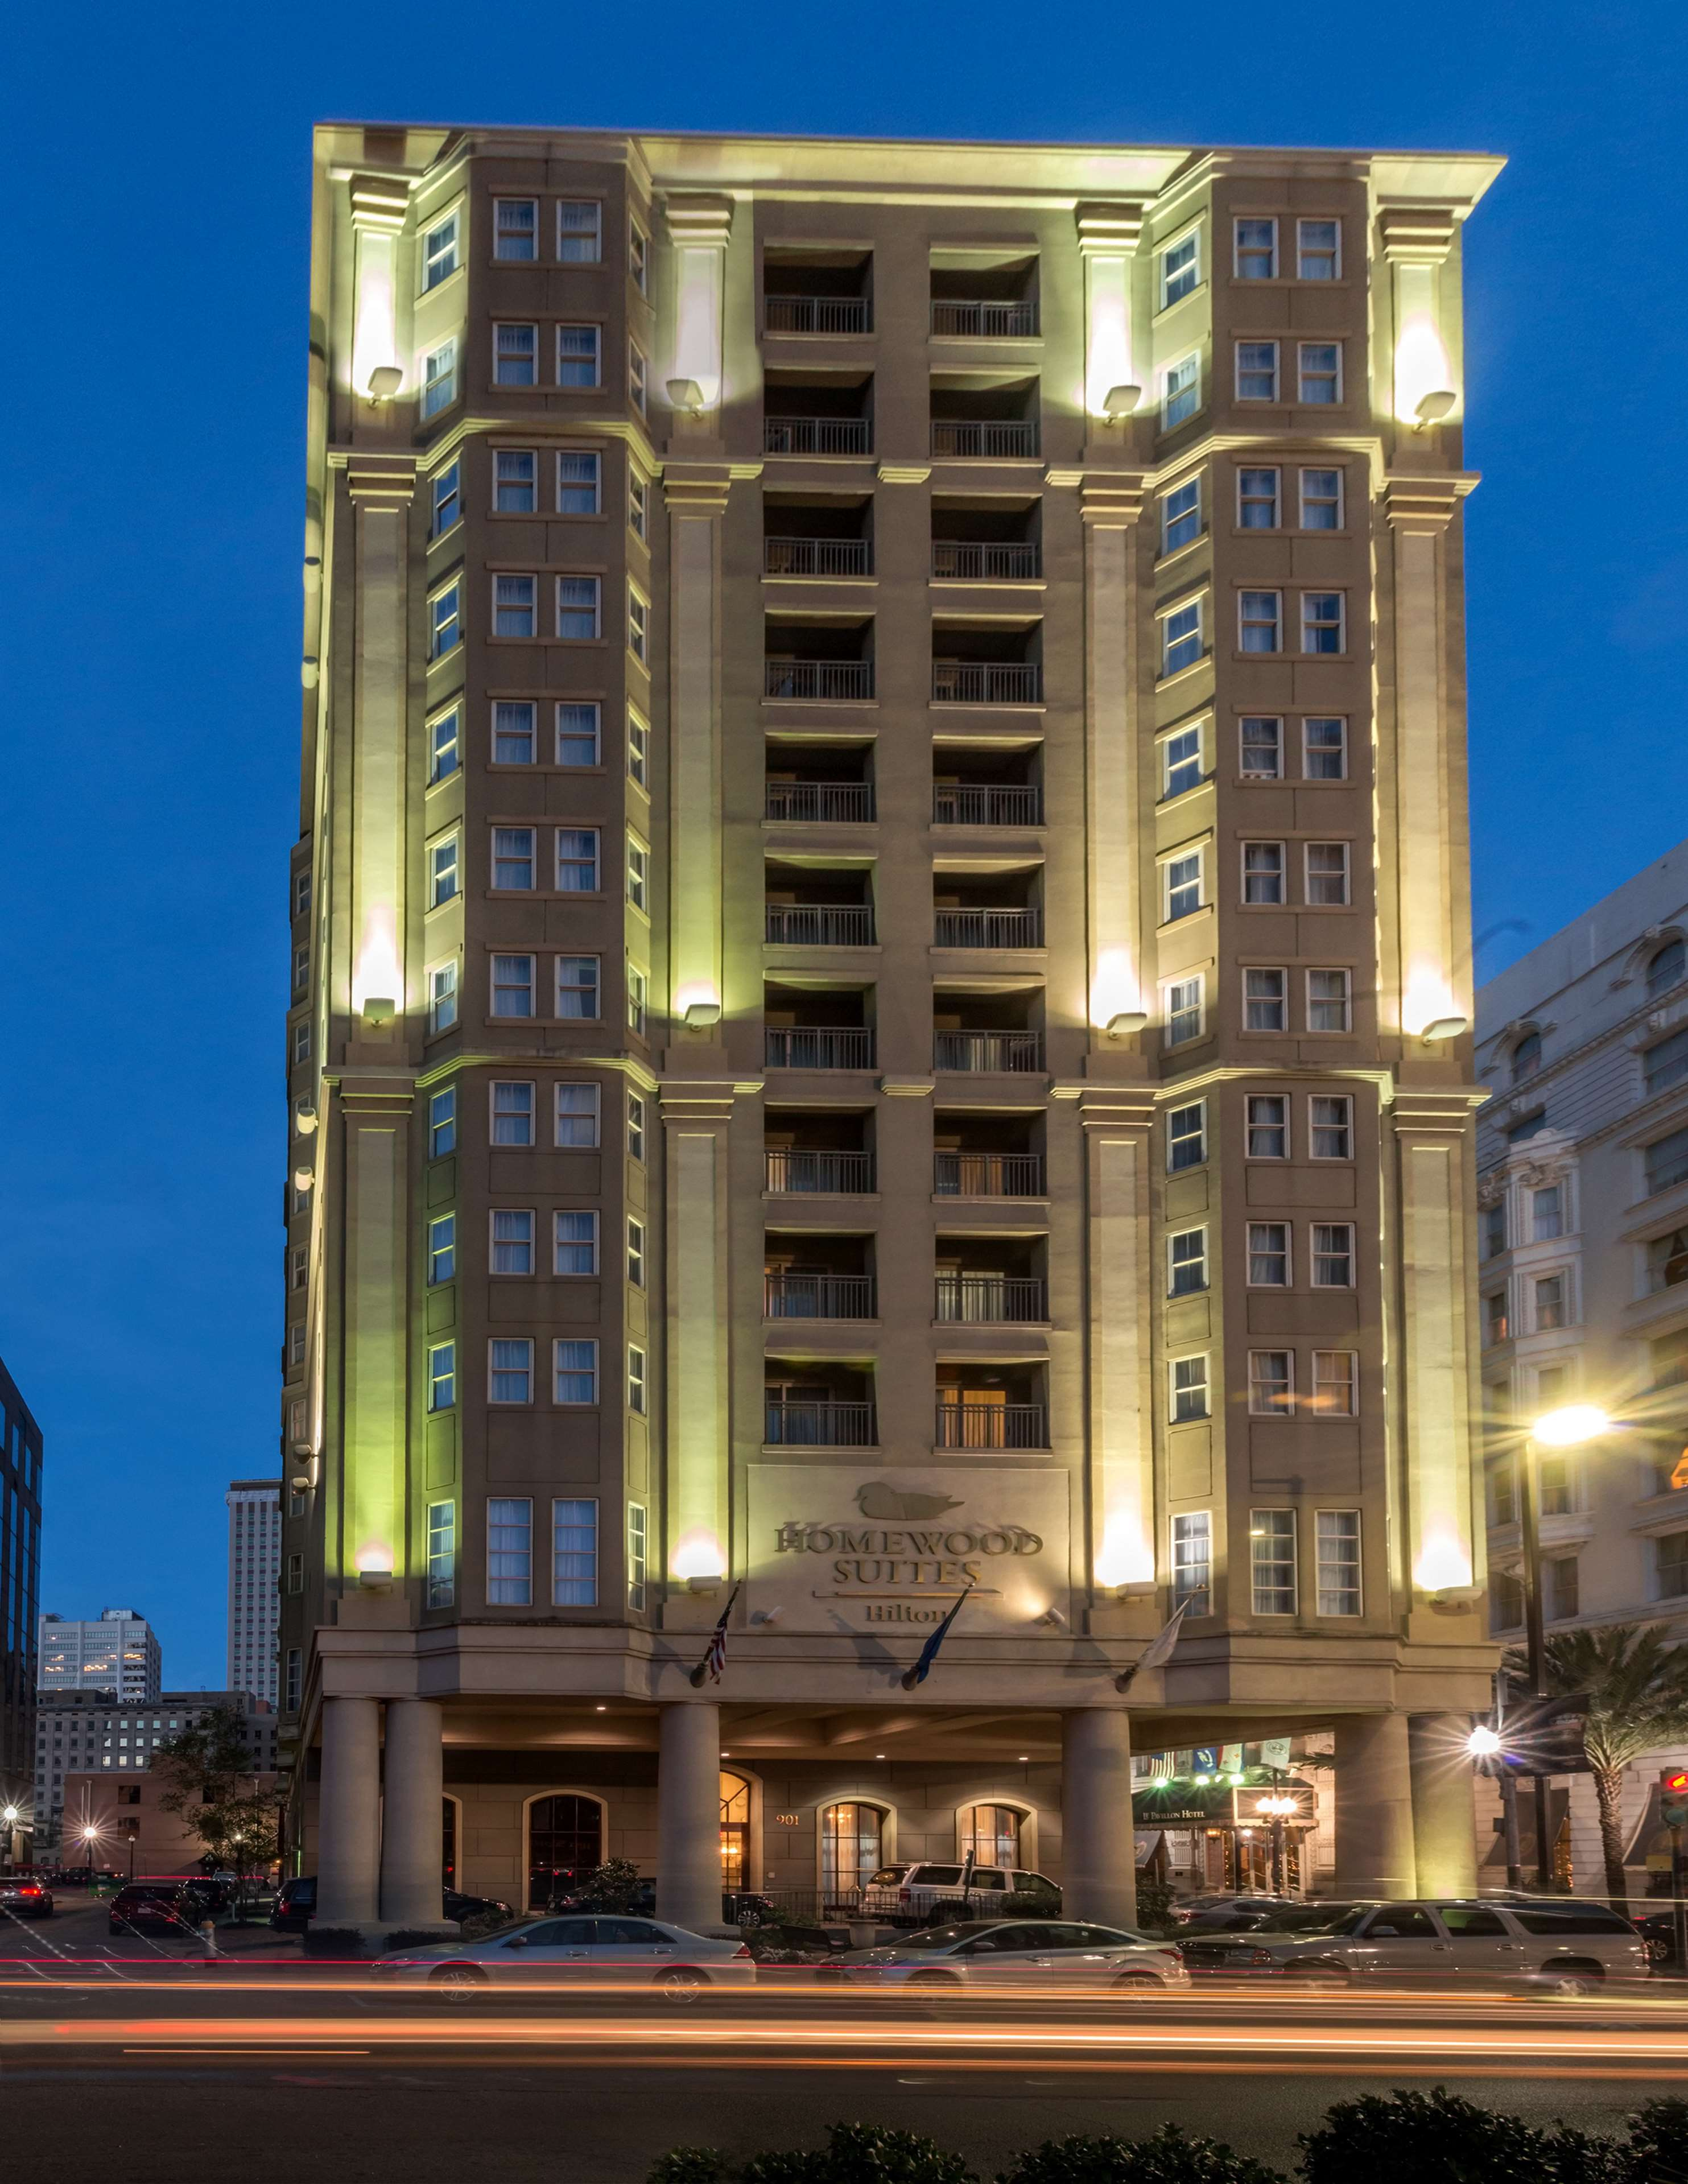 Homewood Suites by Hilton New Orleans image 0